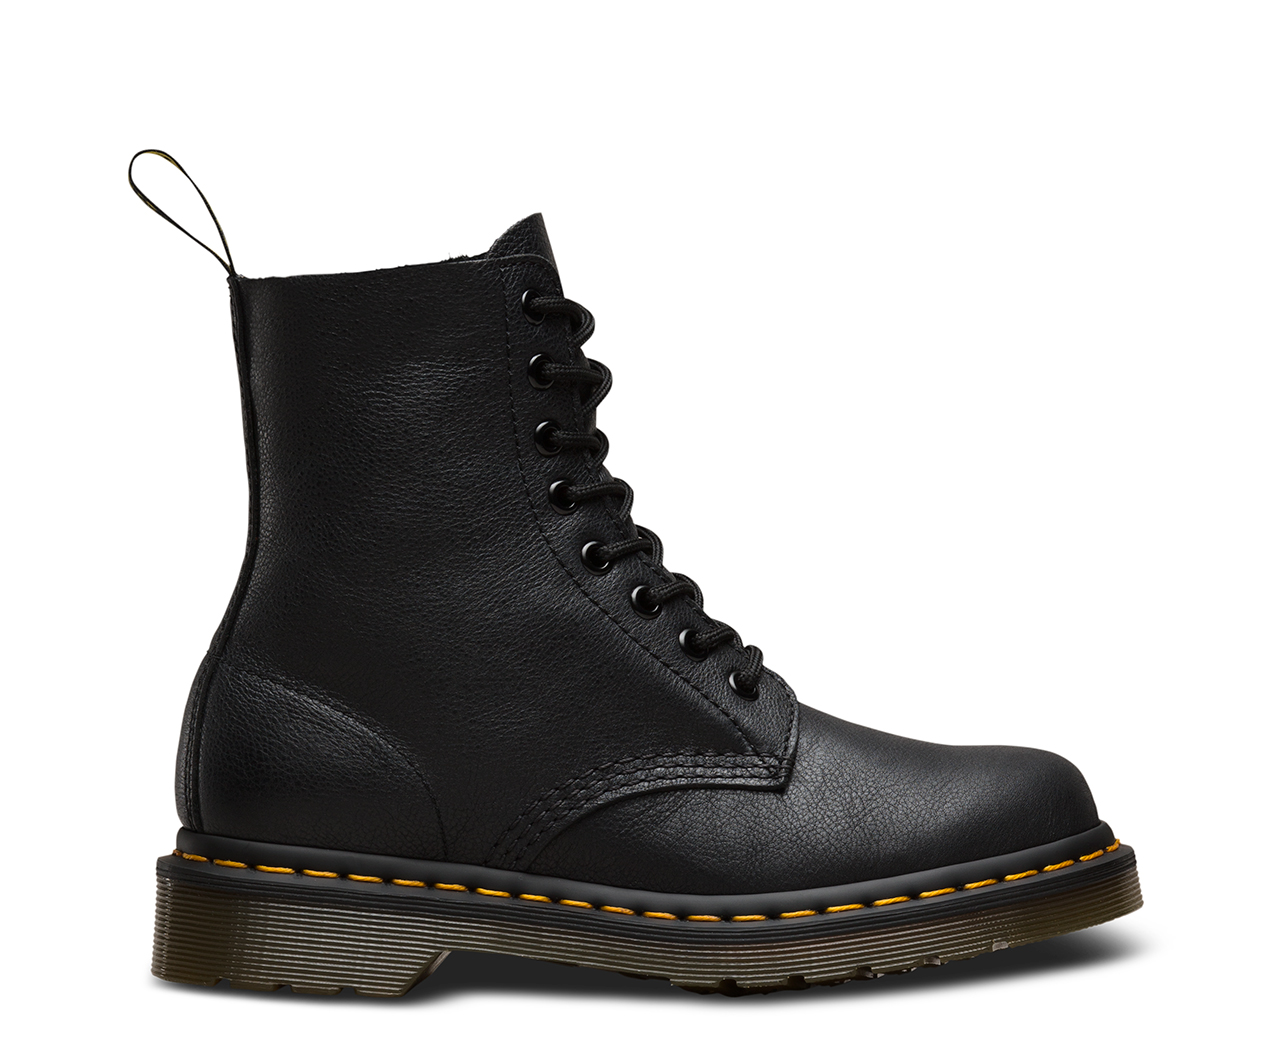 1460 PASCAL VIRGINIA Womens Boots The Official US Dr